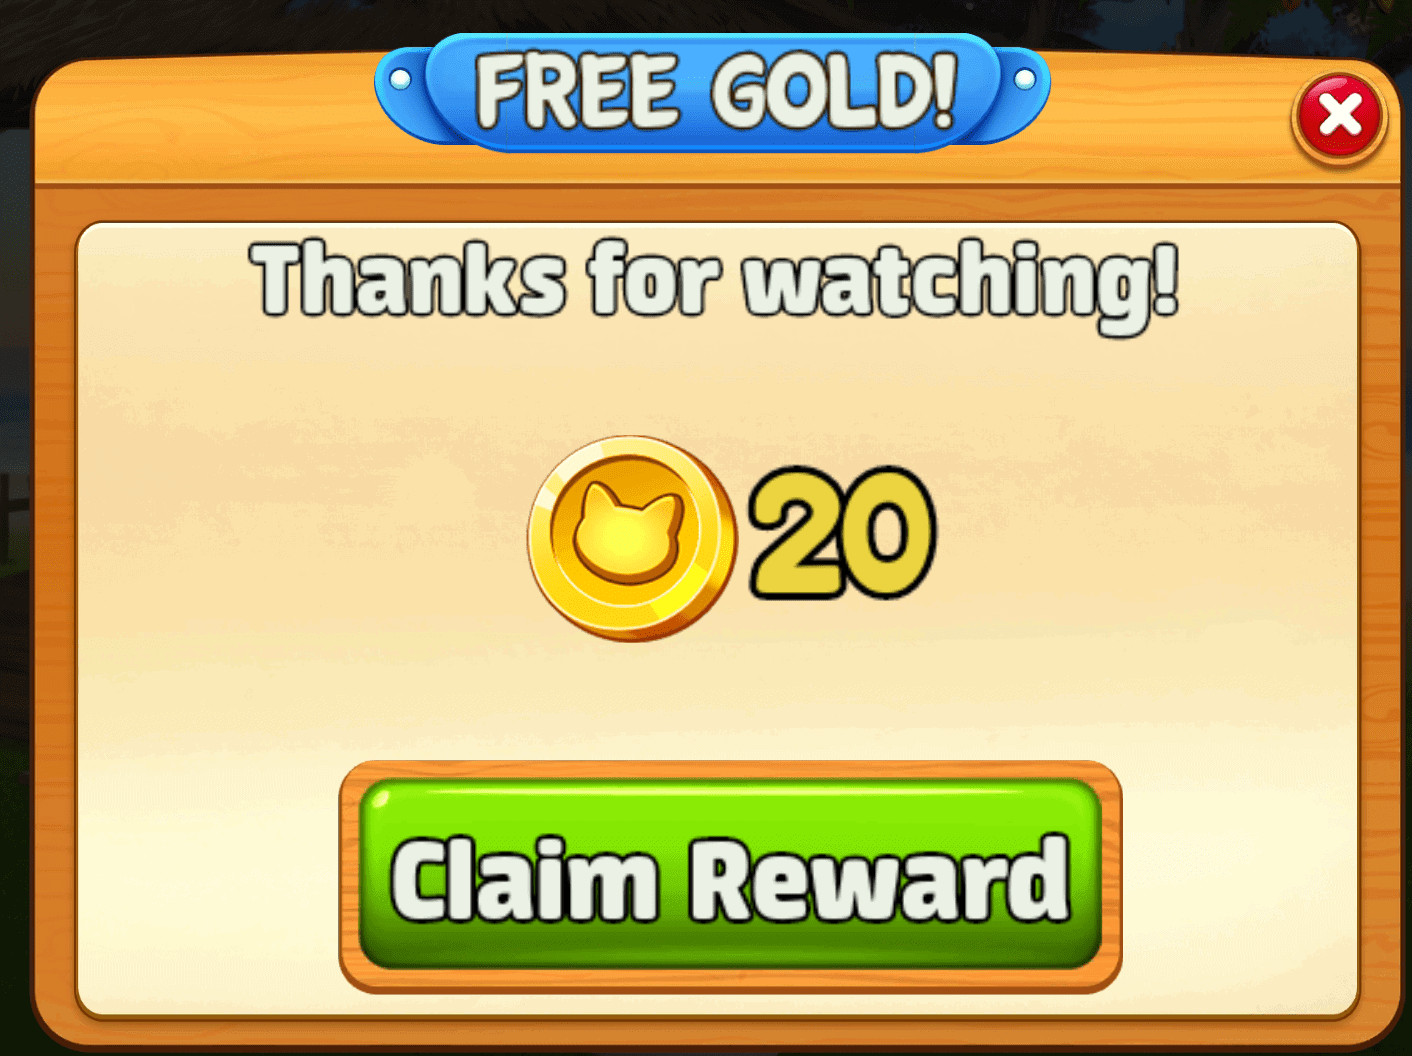 You get 20 gold from watching a video ad